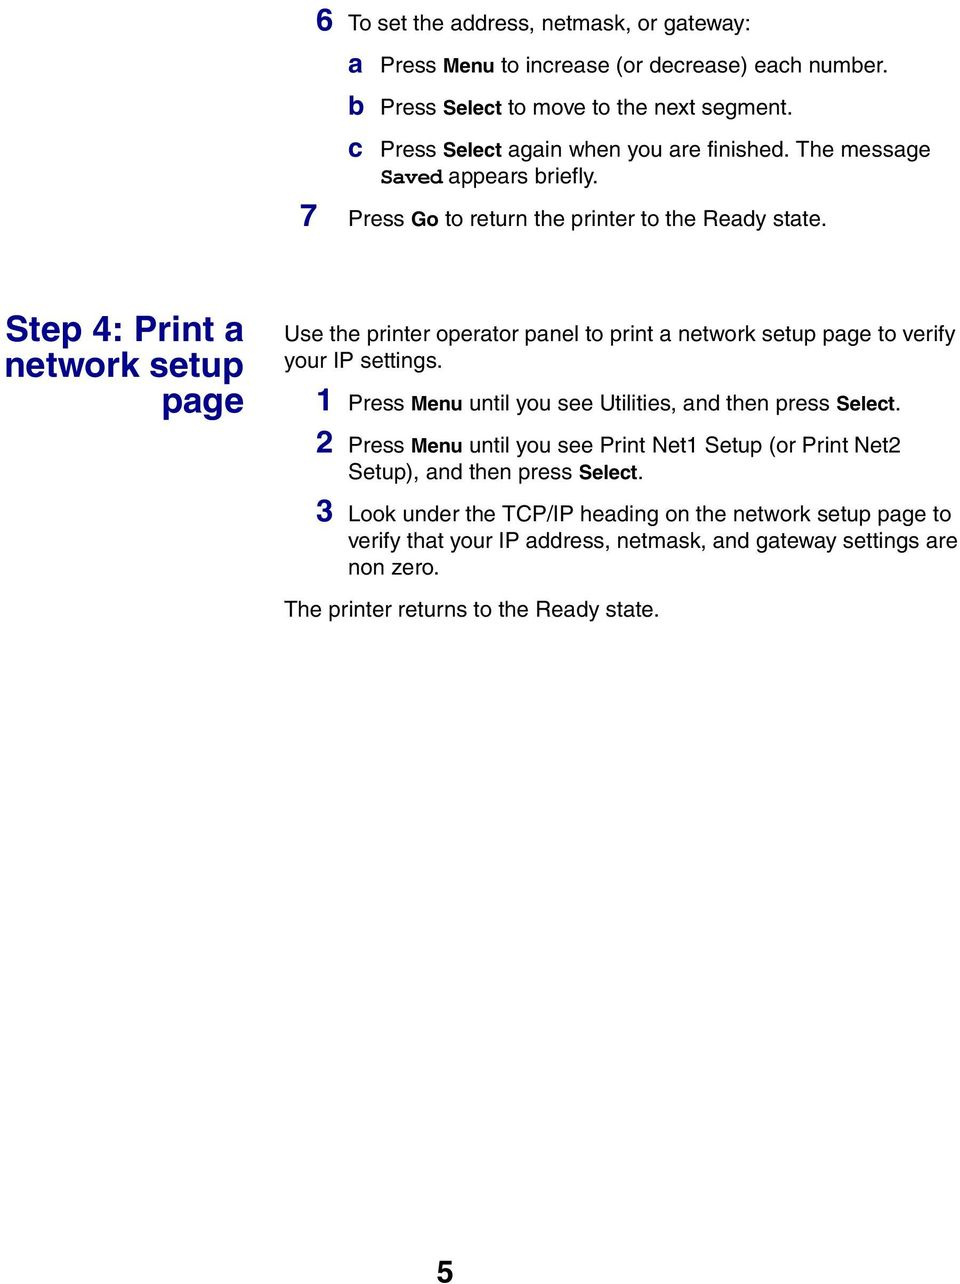 Step 4: Print a network setup page Use the printer operator panel to print a network setup page to verify your IP settings.